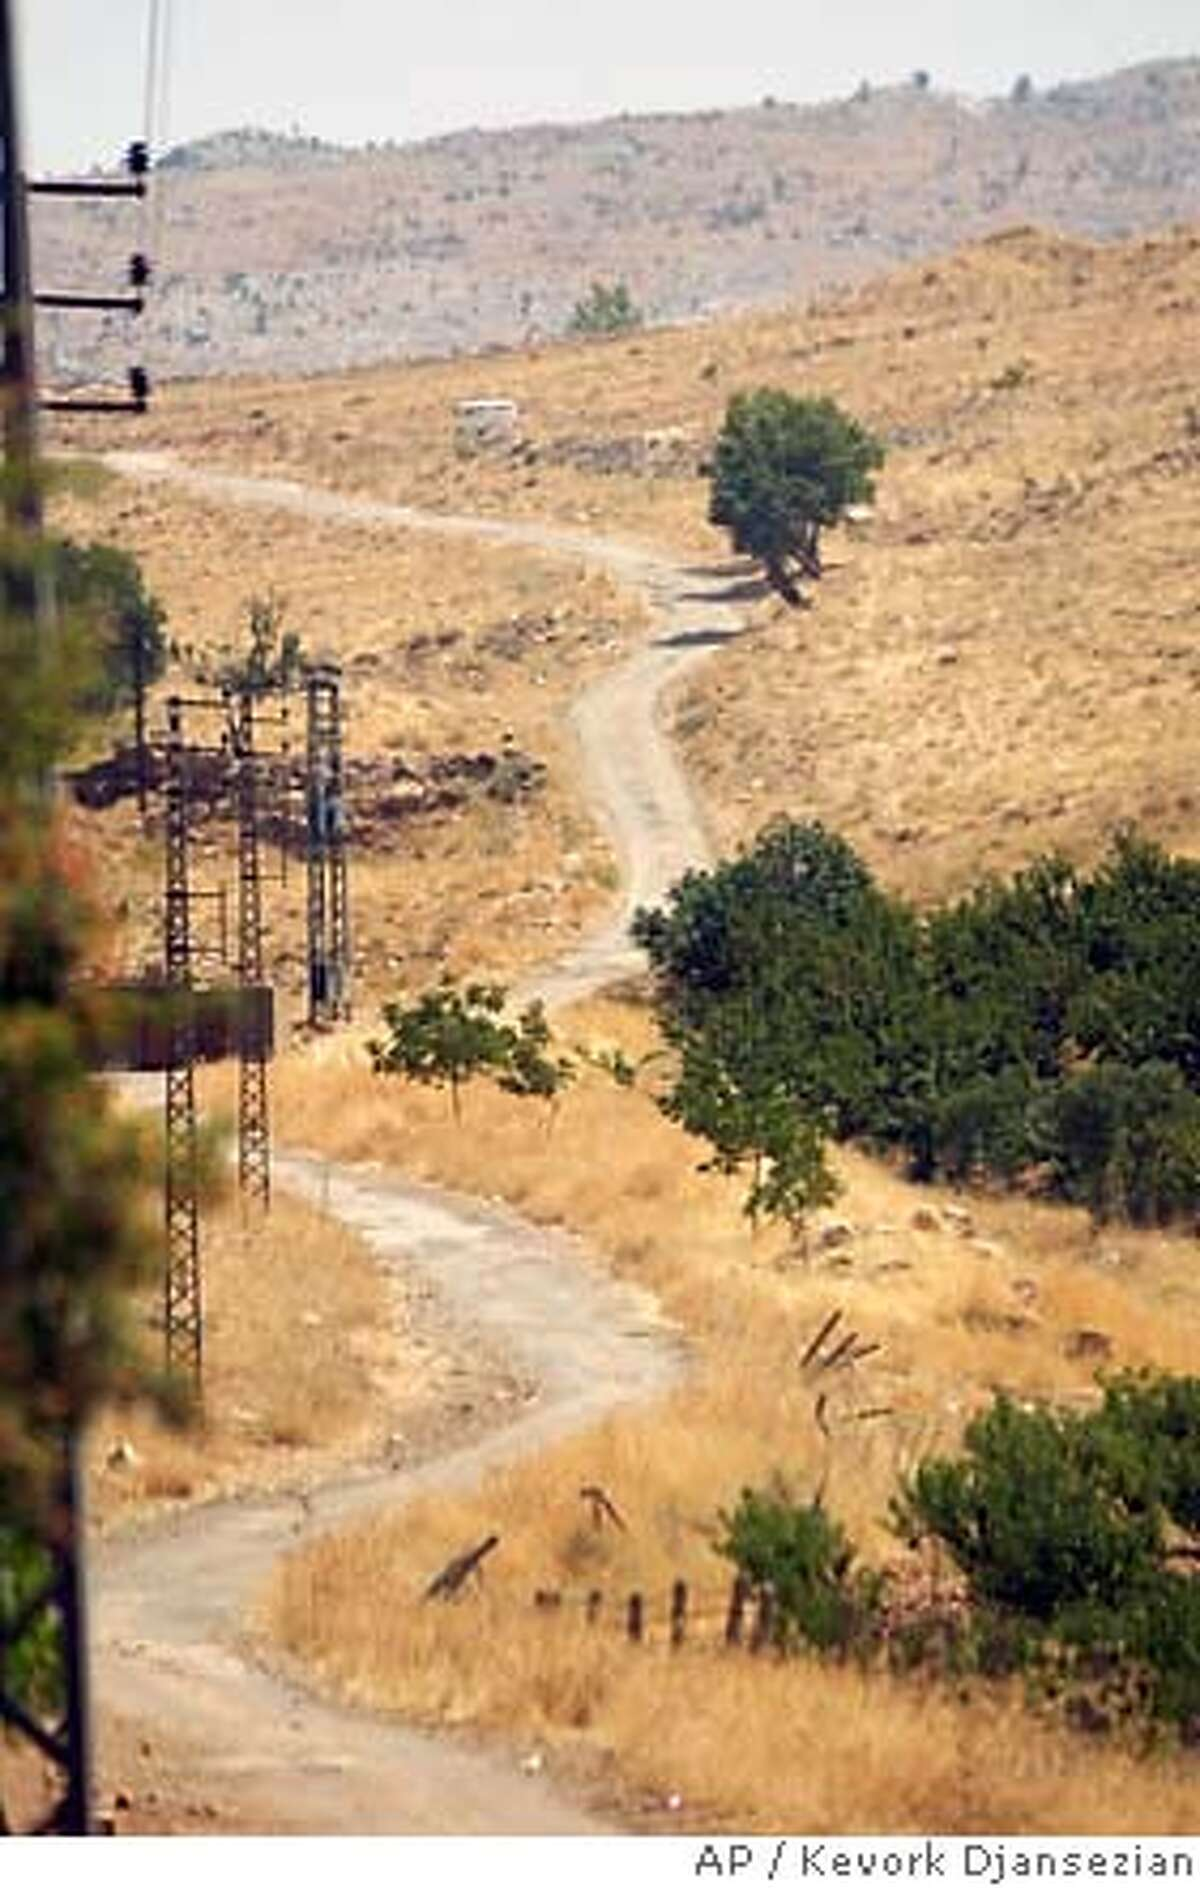 A dirt road which leads towards the Syrian border is seen from Aita-Al-Fourkhar village in the Bekaa Valley, Lebanon, Saturday, Aug. 26, 2006. The Lebanese army is rushing troops to the country's porous borders, because Israel has said it won't lift its air and sea blockade of the country until the frontier is clamped shut and new arms are not flowing to Hezbollah fighters from their benefactors in Syria and Iran. The army said putting soldiers along the route has reduced smuggling by 90%. (AP Photo/Kevork Djansezian)